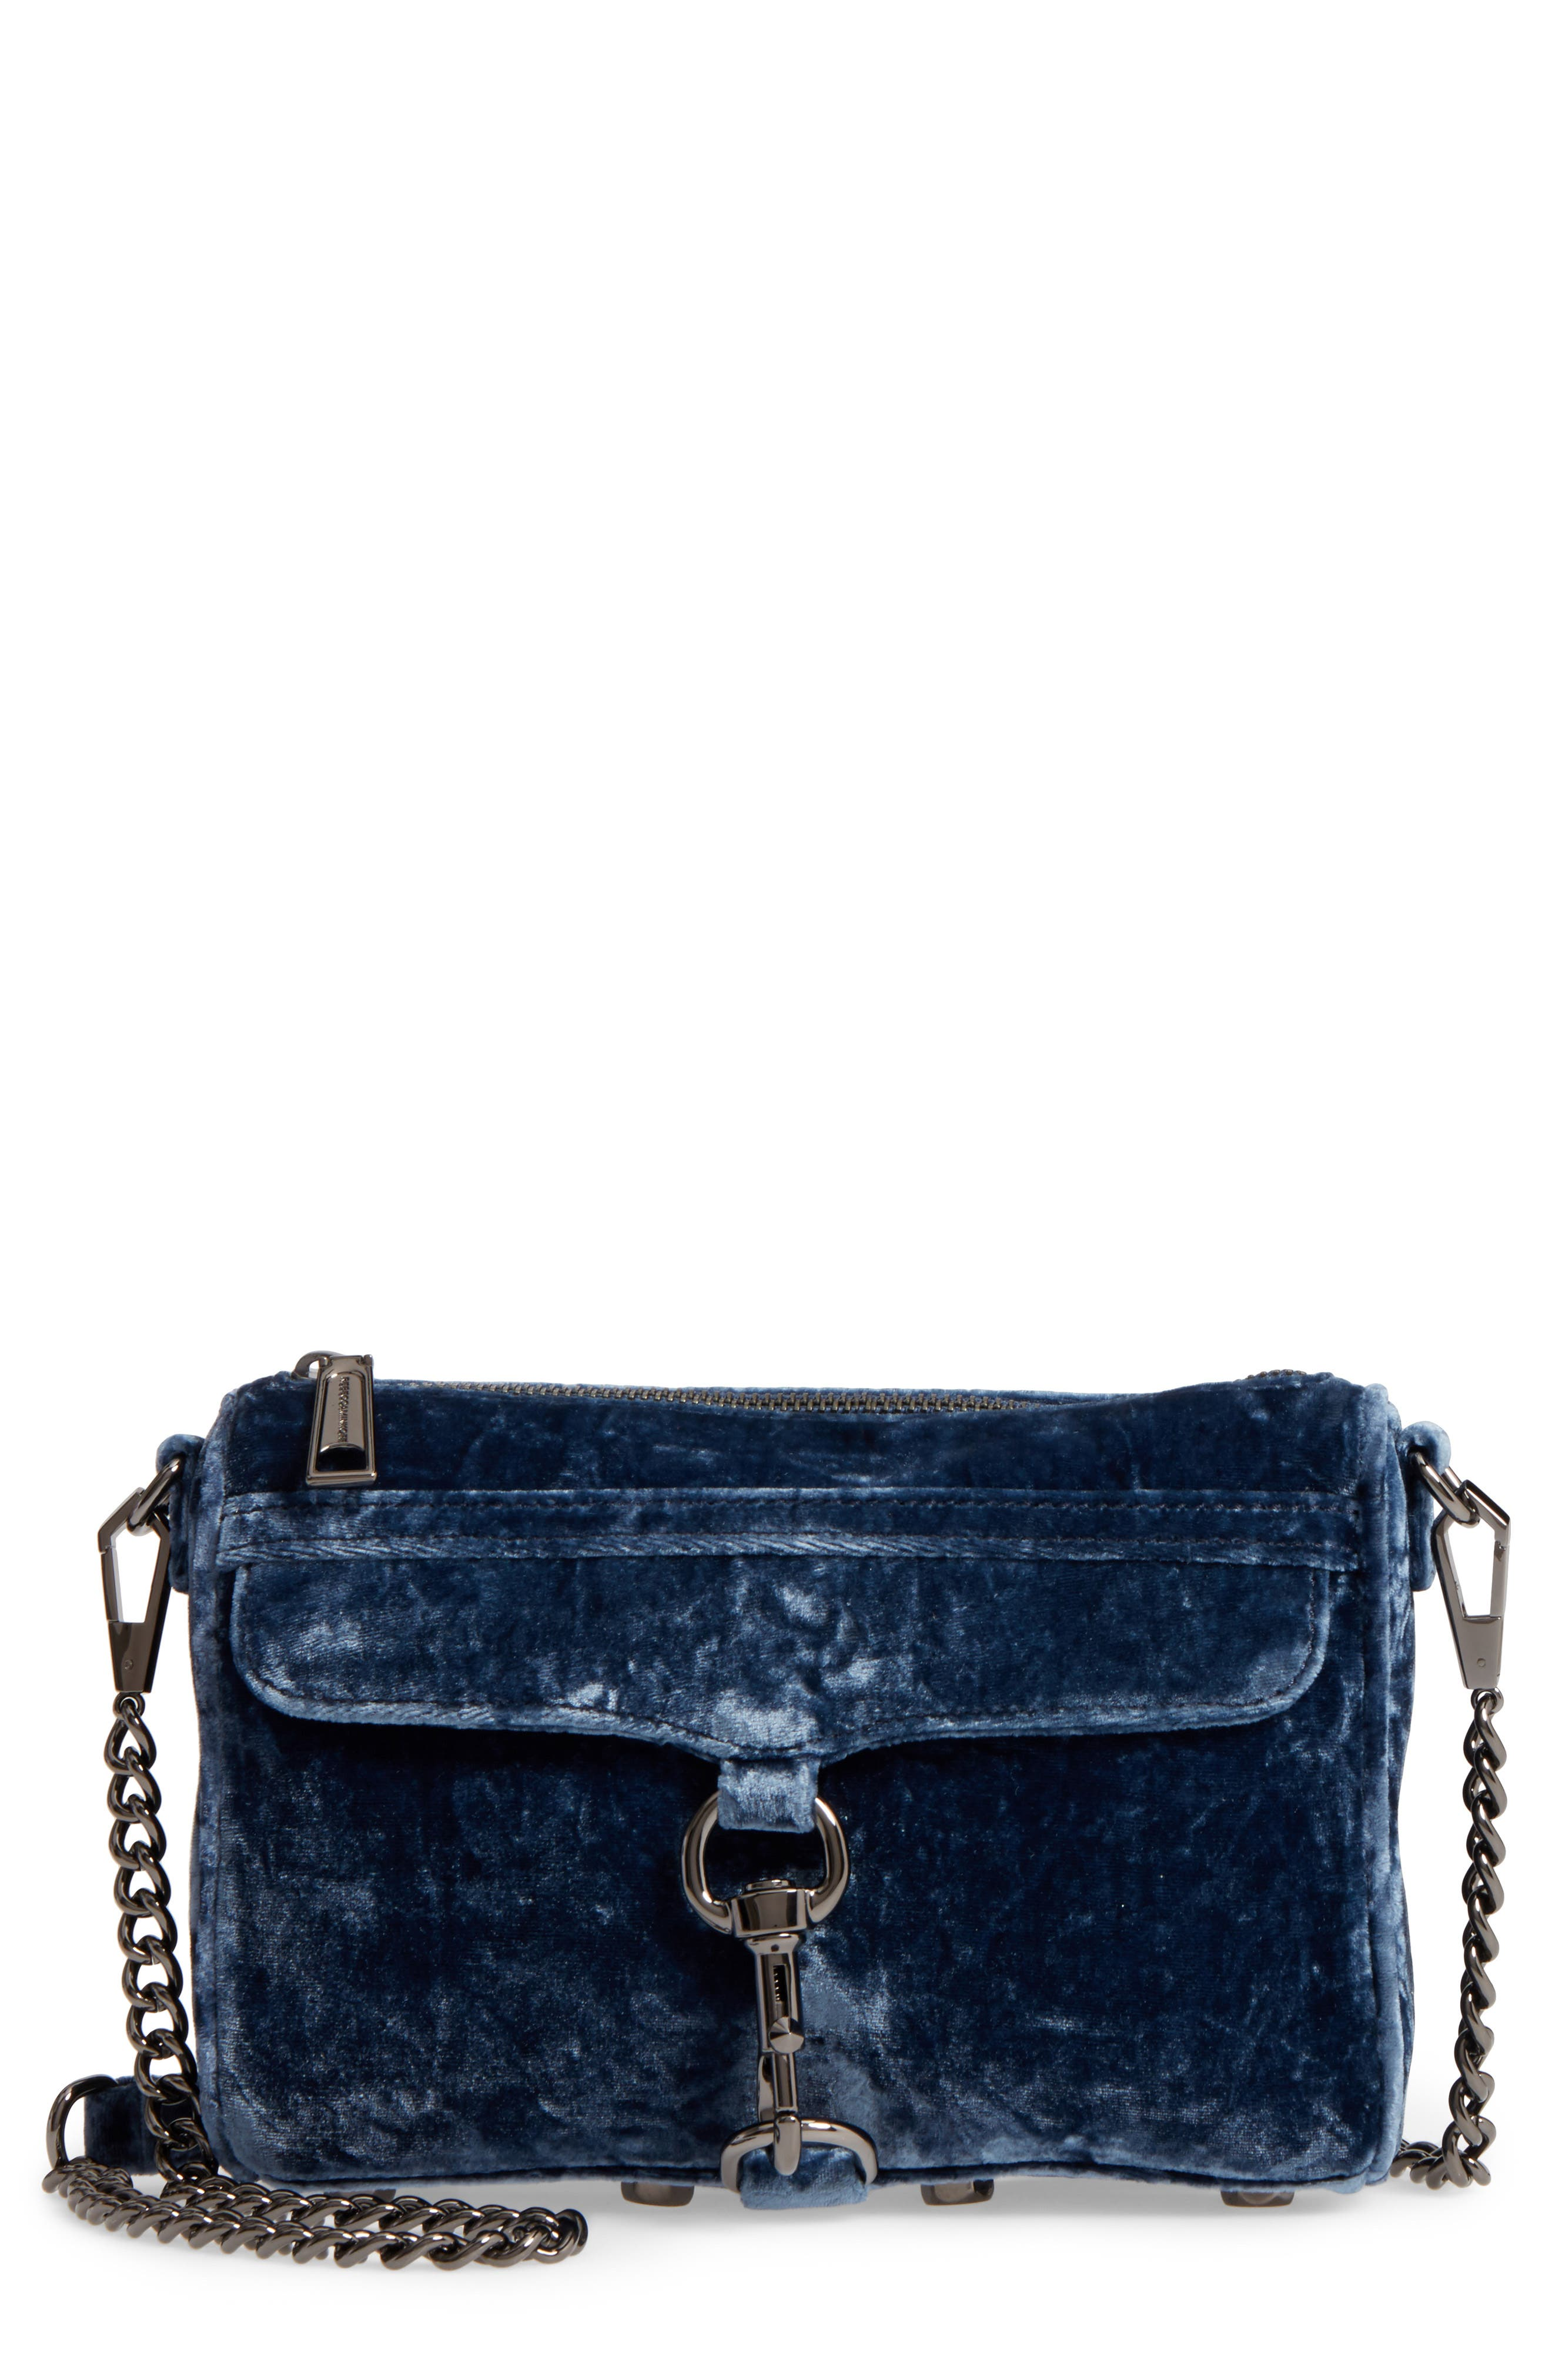 REBECCA MINKOFF Mini MAC Velvet Convertible Crossbody Bag